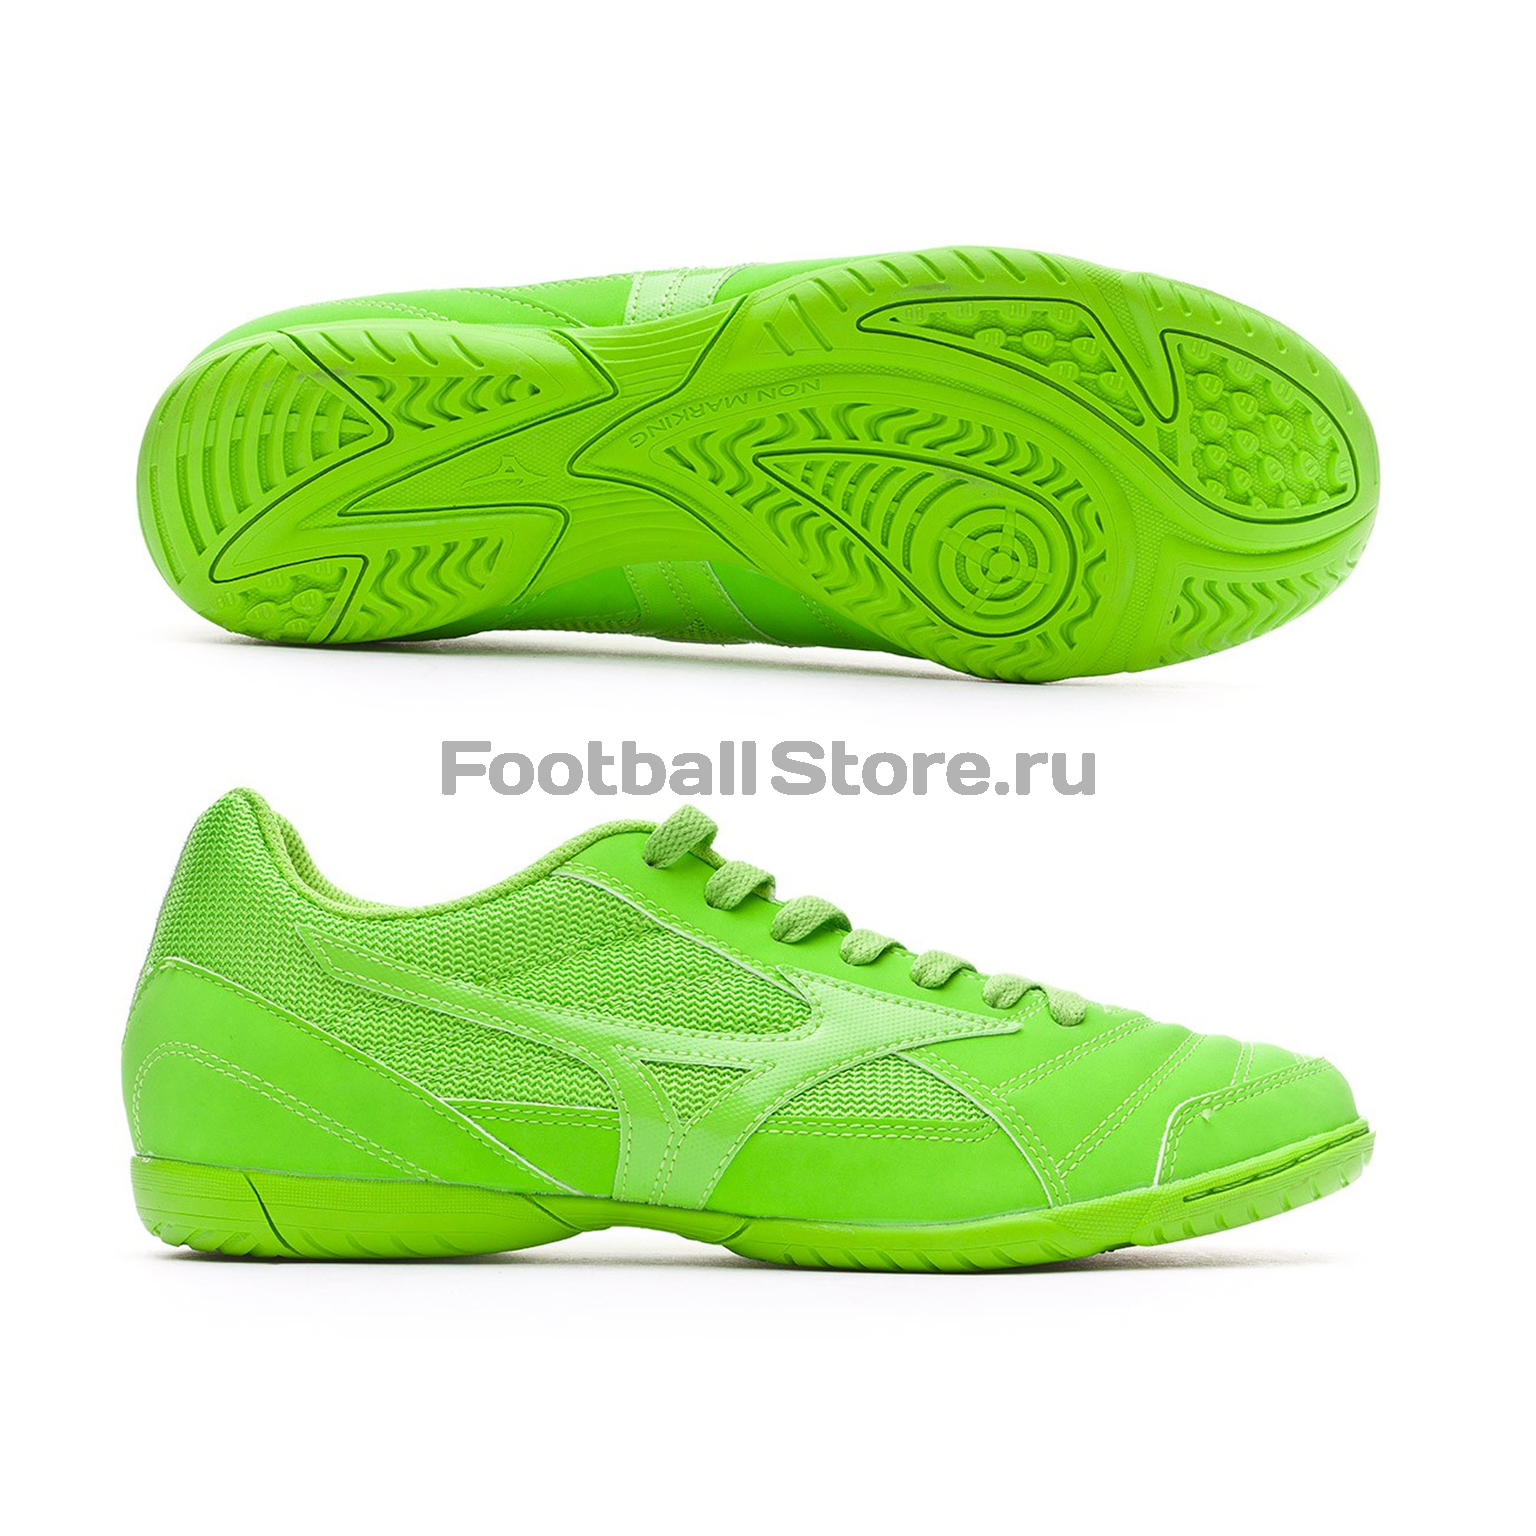 Футзалки Nike Mizuno Sala Club 2 IN Q1GA1851-37 футзалки nike tiempo premier ii sala av3153 001